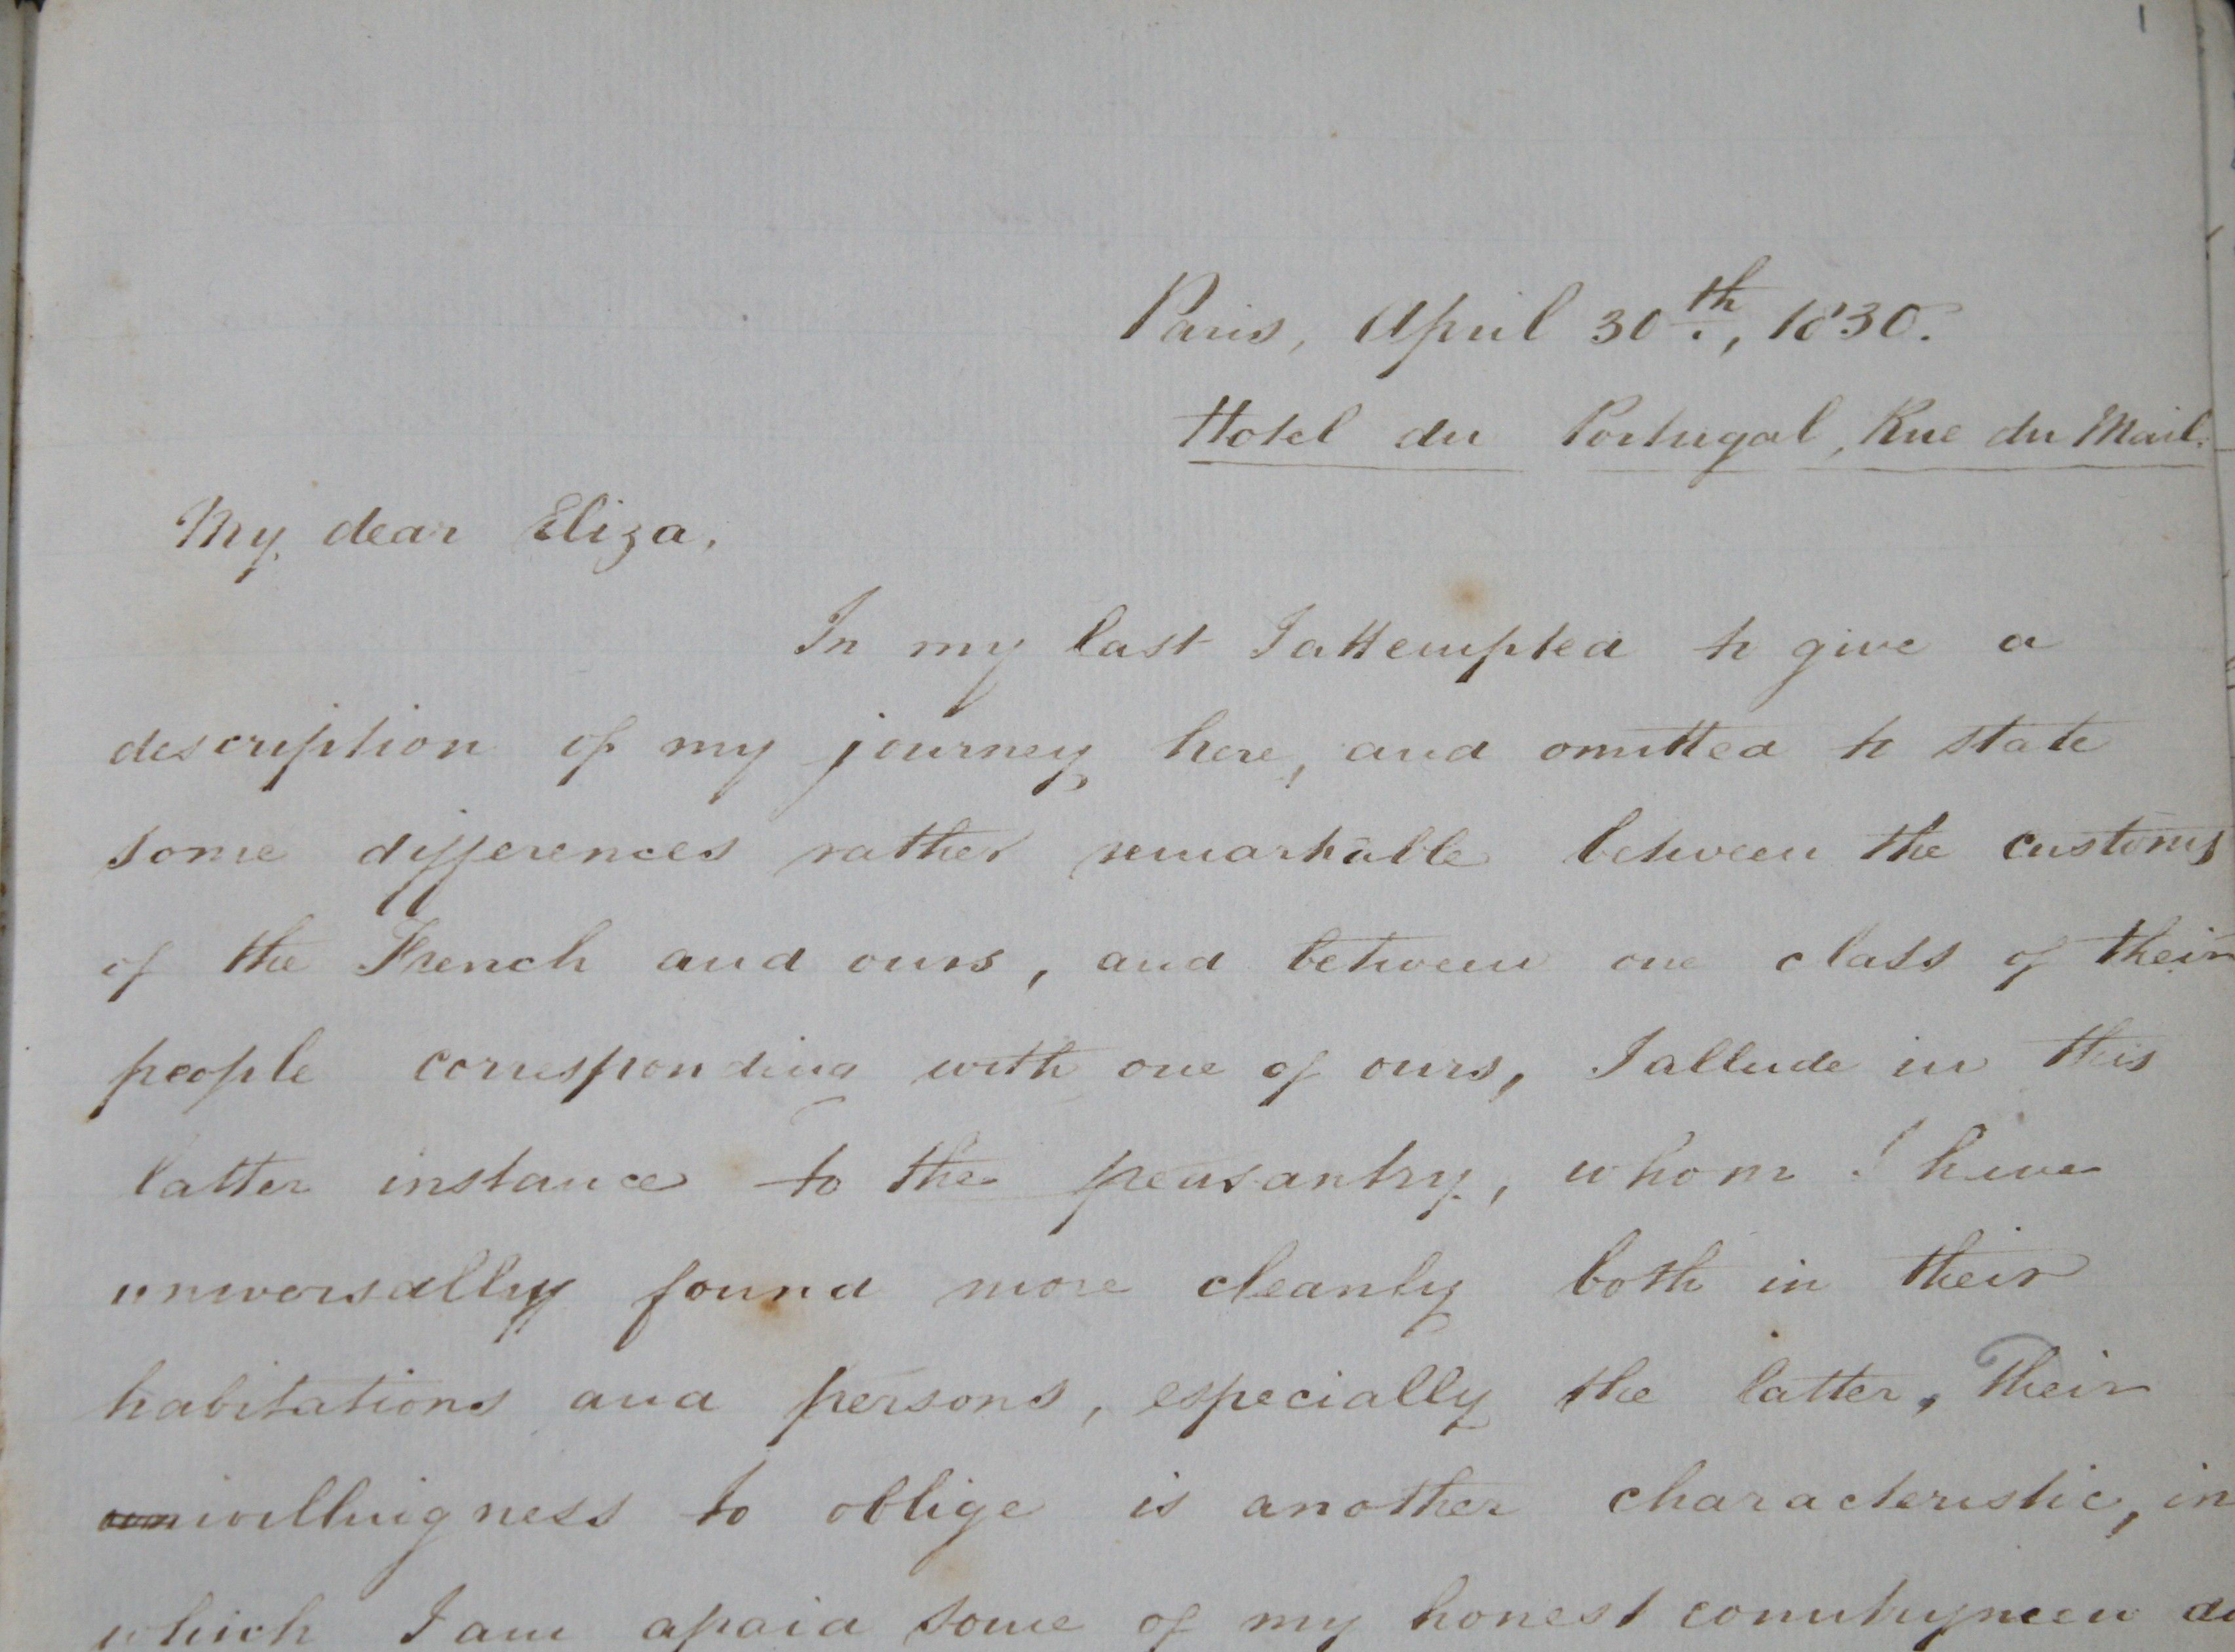 Spencerian Script Written At A Perfect 52c2b0 Angle